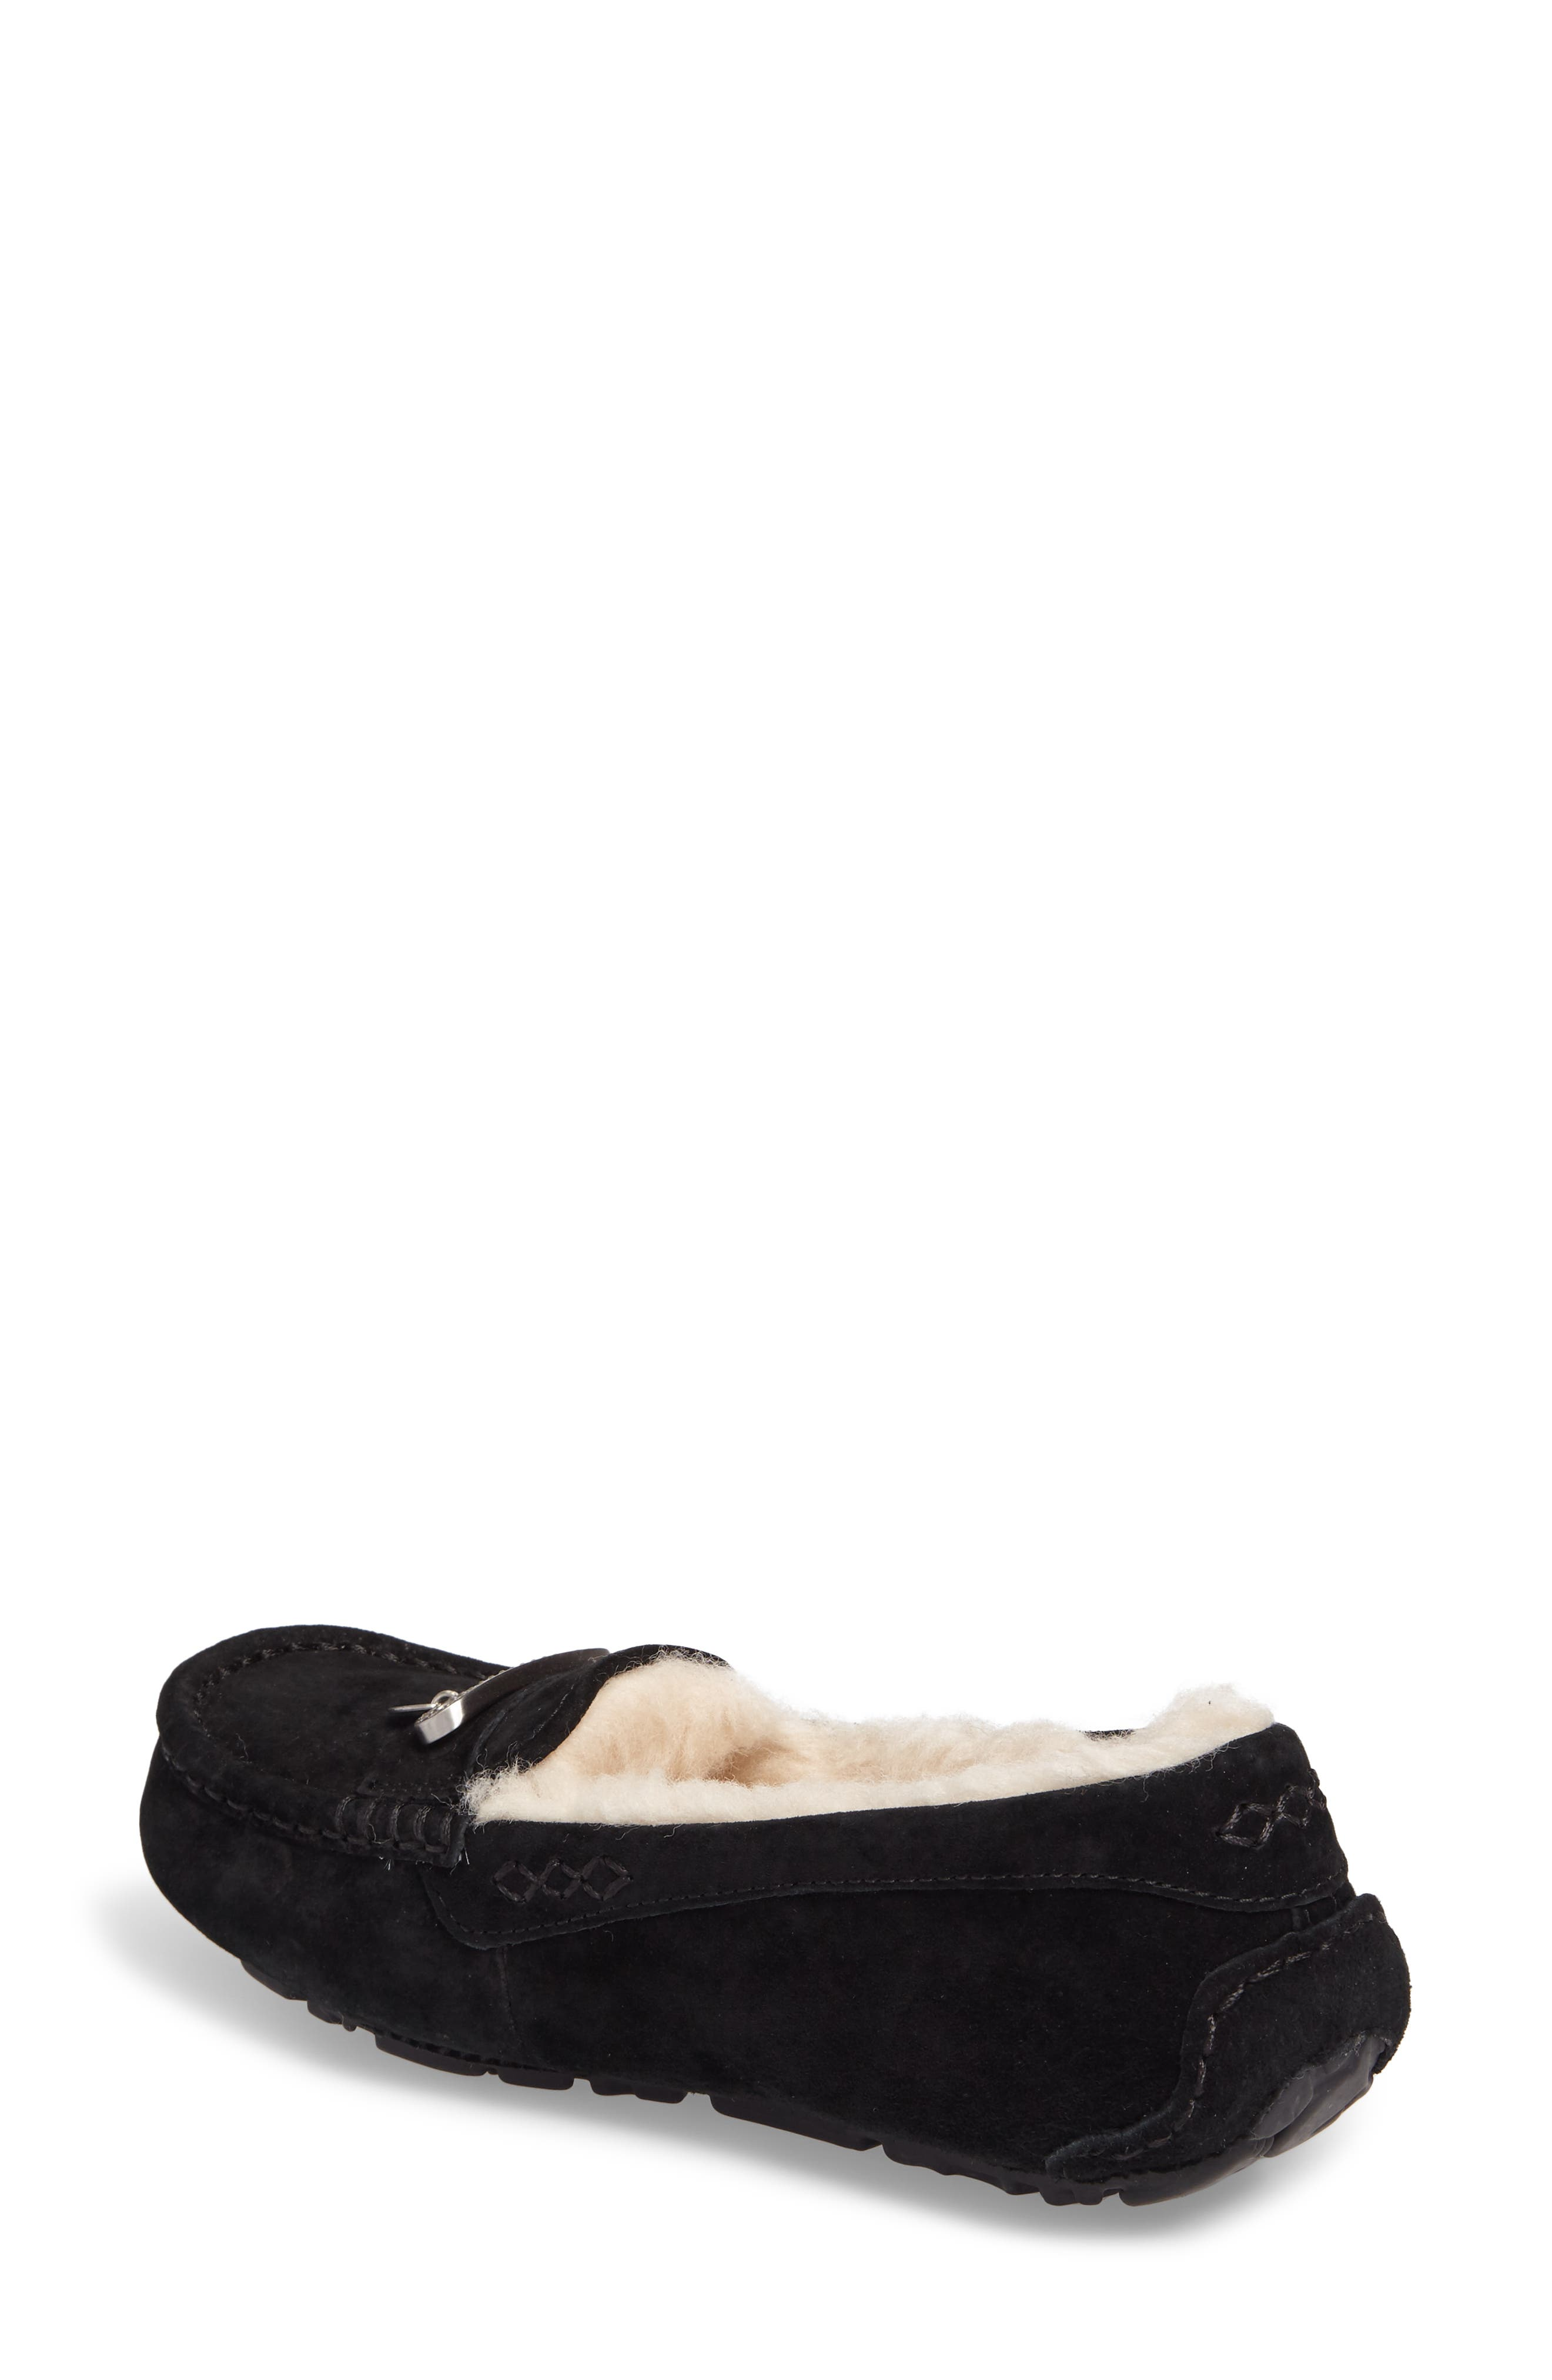 Florencia Water Resistant Silkee<sup>™</sup> Suede Slipper,                             Alternate thumbnail 2, color,                             001